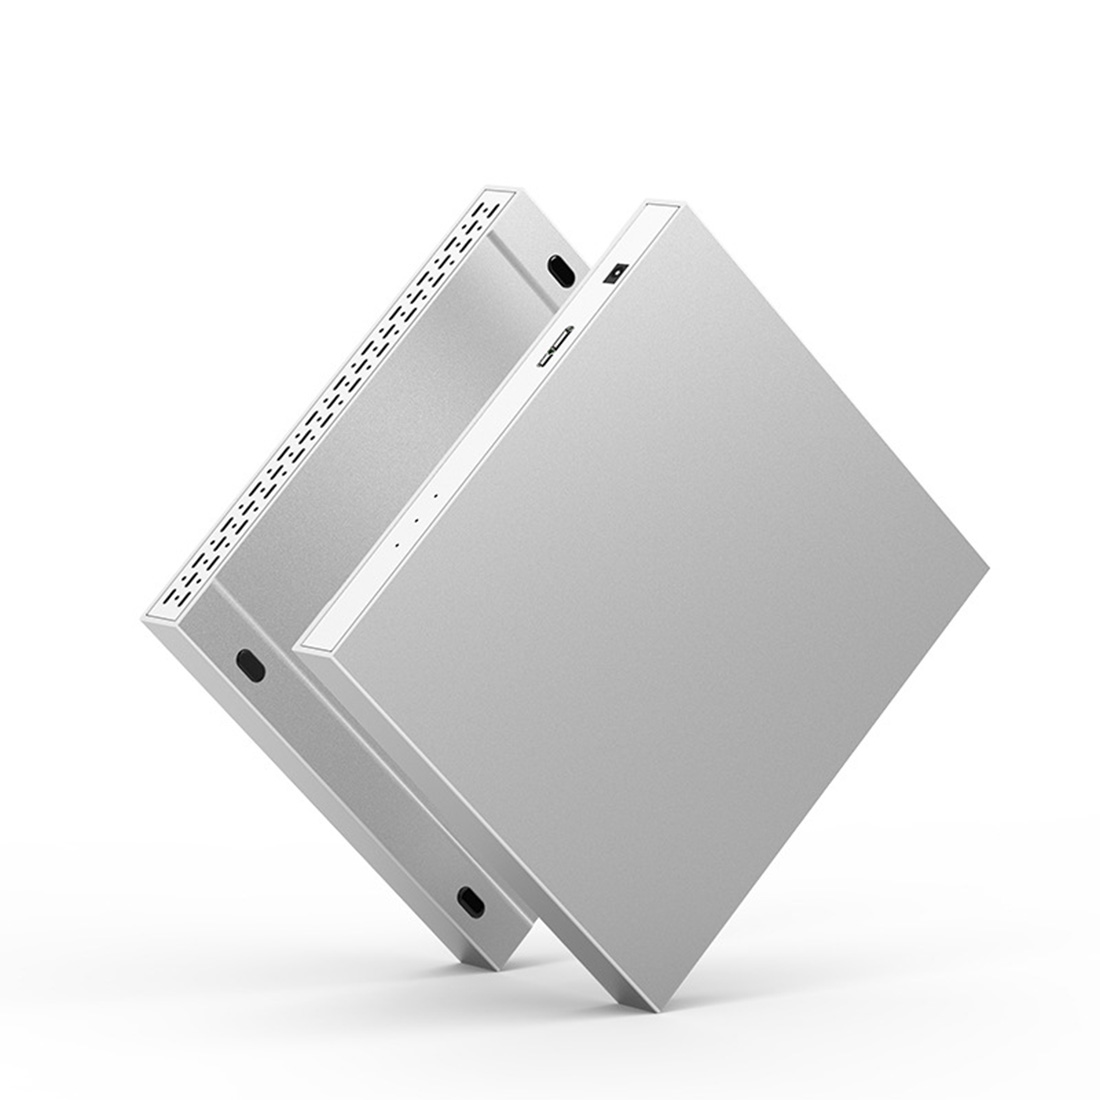 External HDD <font><b>Enclosure</b></font> 2 Bay <font><b>2.5</b></font> inch 10Gbps USB 3.0 / Type C <font><b>Raid</b></font> 4 Modes for Windows Mac Linux 20TB SATA Hard Drive Array Box image